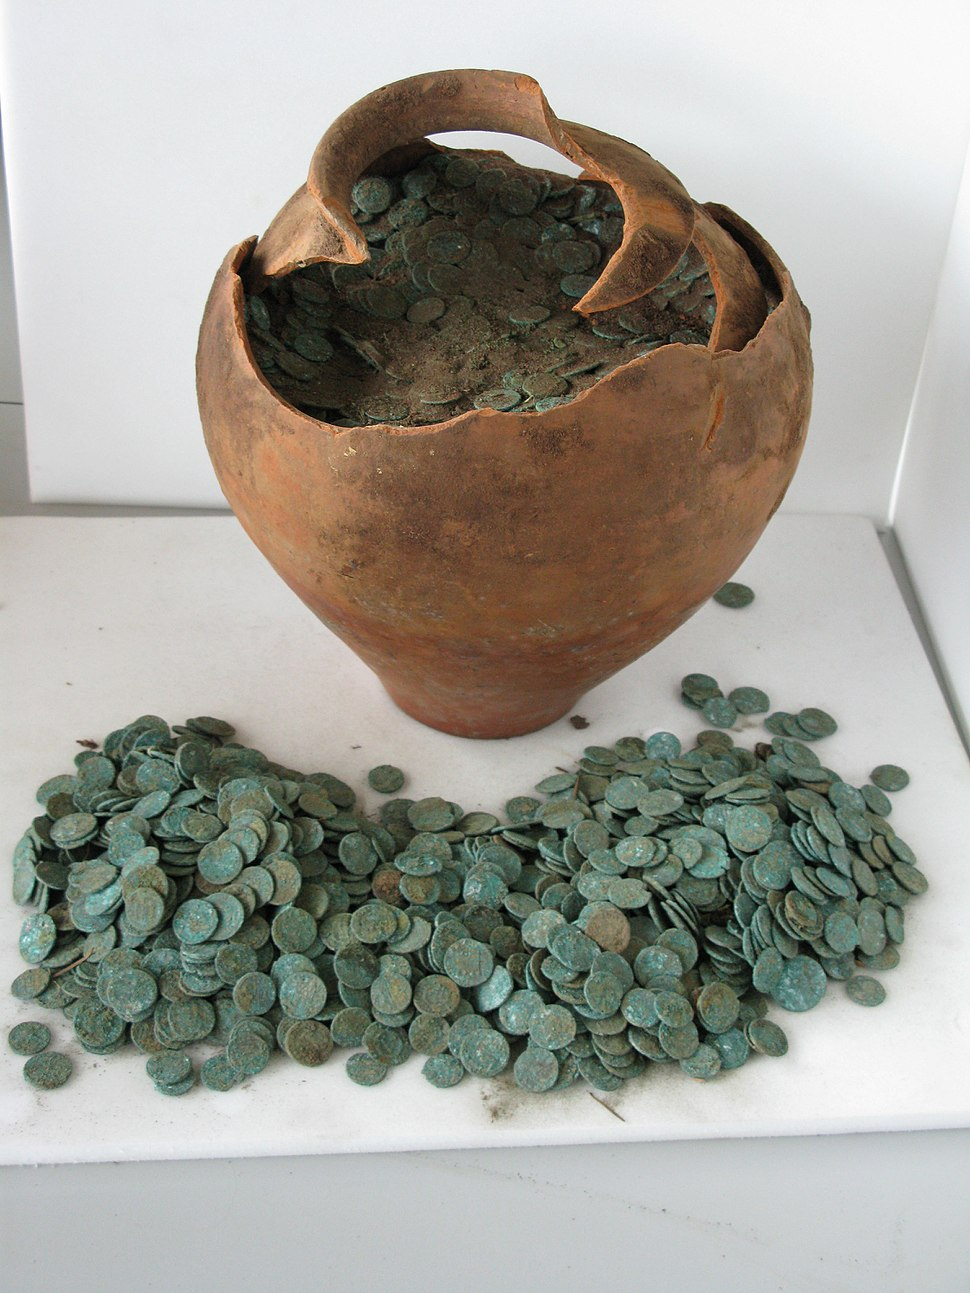 Another view of the vessel and the hoard (2)